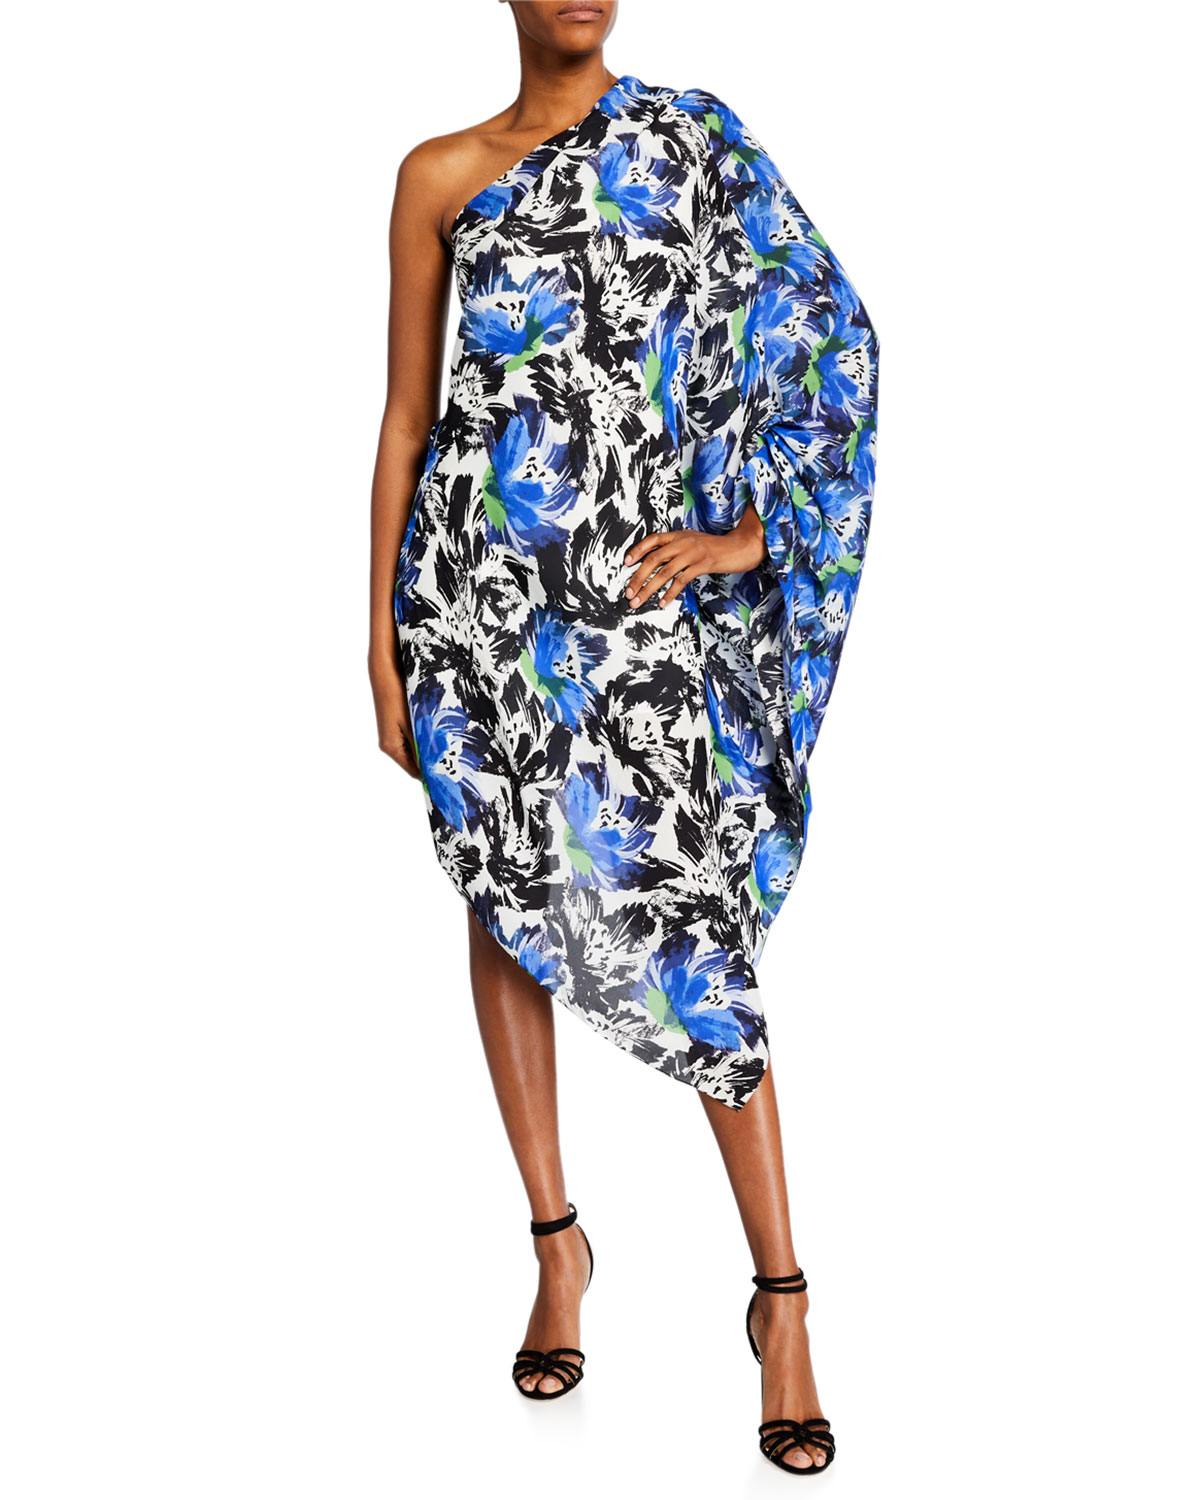 Roland Mouret Dresses KNIGHT ASYMMETRIC ONE-SHOULDER ABSTRACT FLORAL TUNIC DRESS